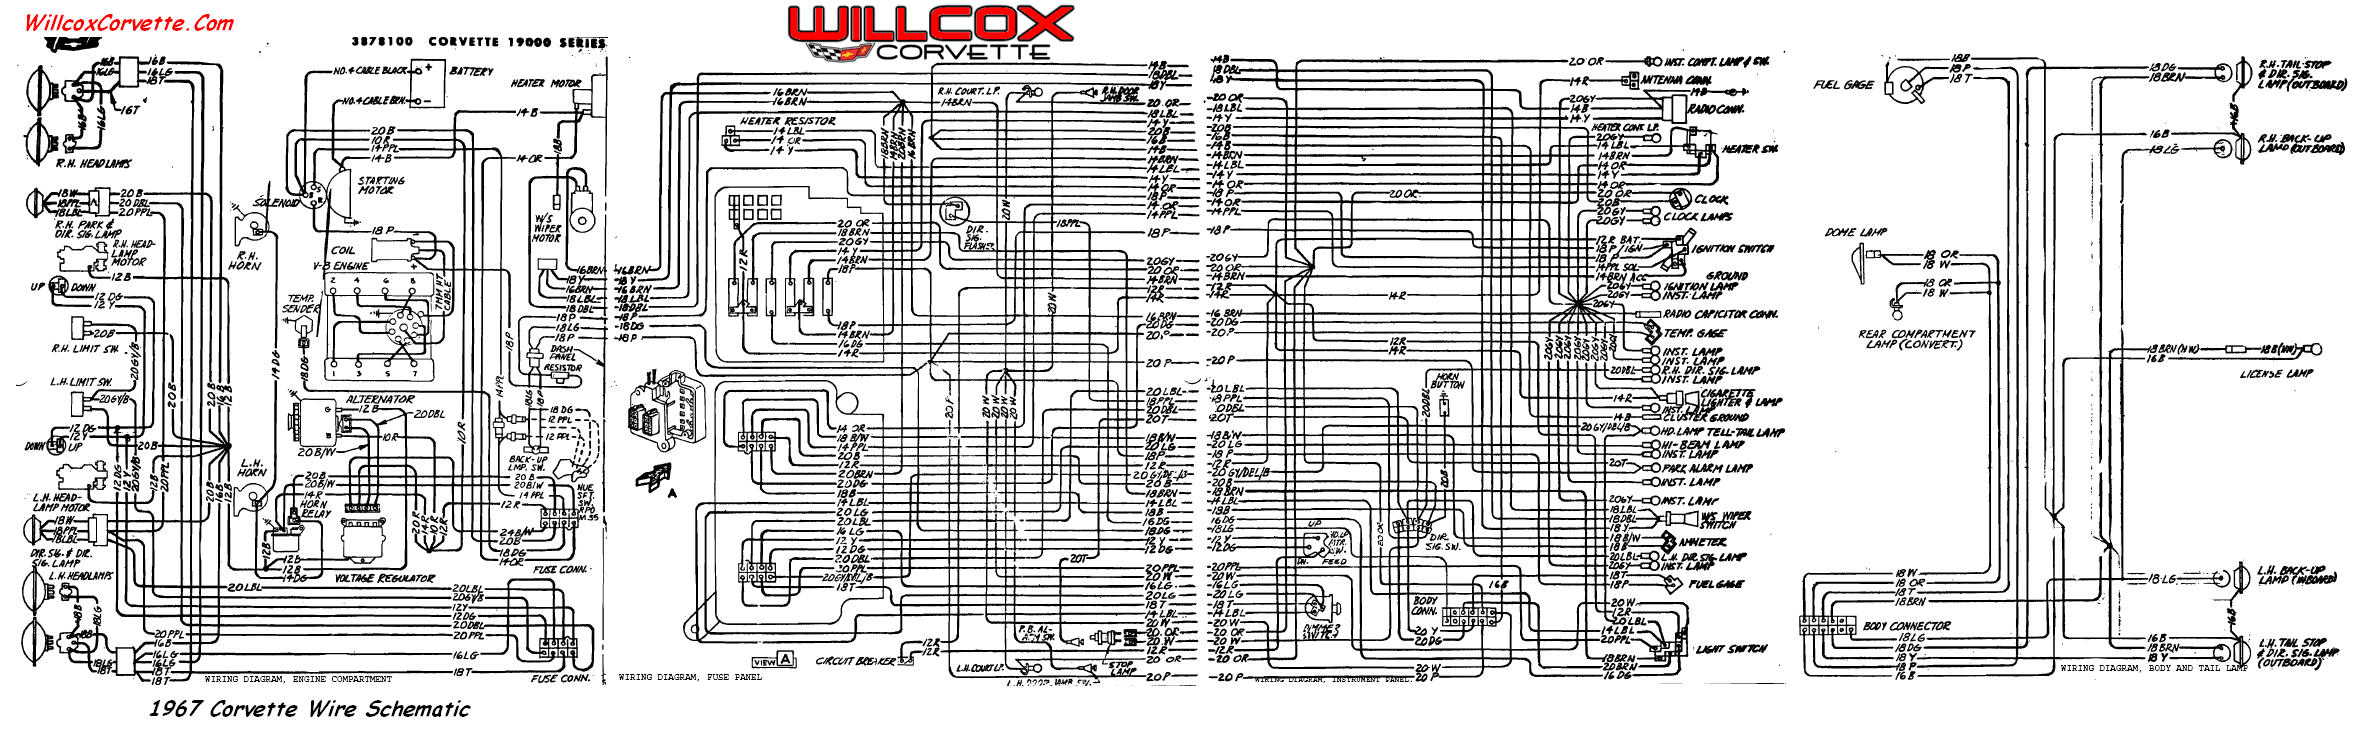 Wiring Diagram For Lincoln Sa 200 Get Free Image About Wiring